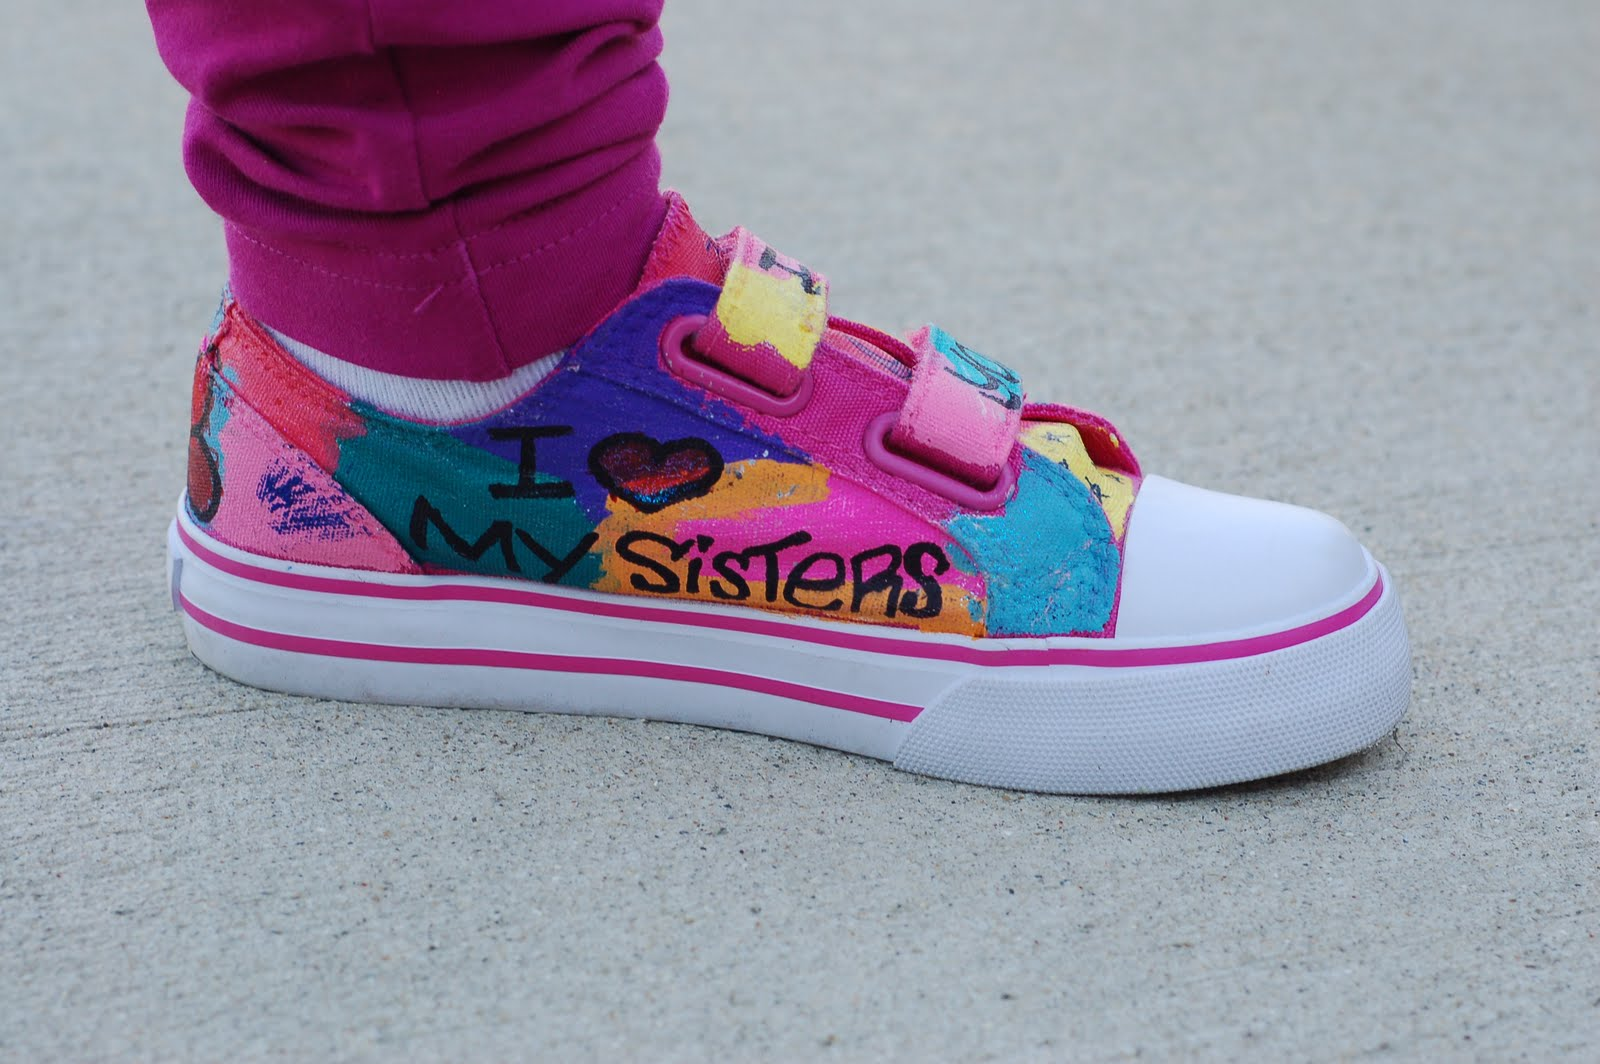 Graffiti Shoes